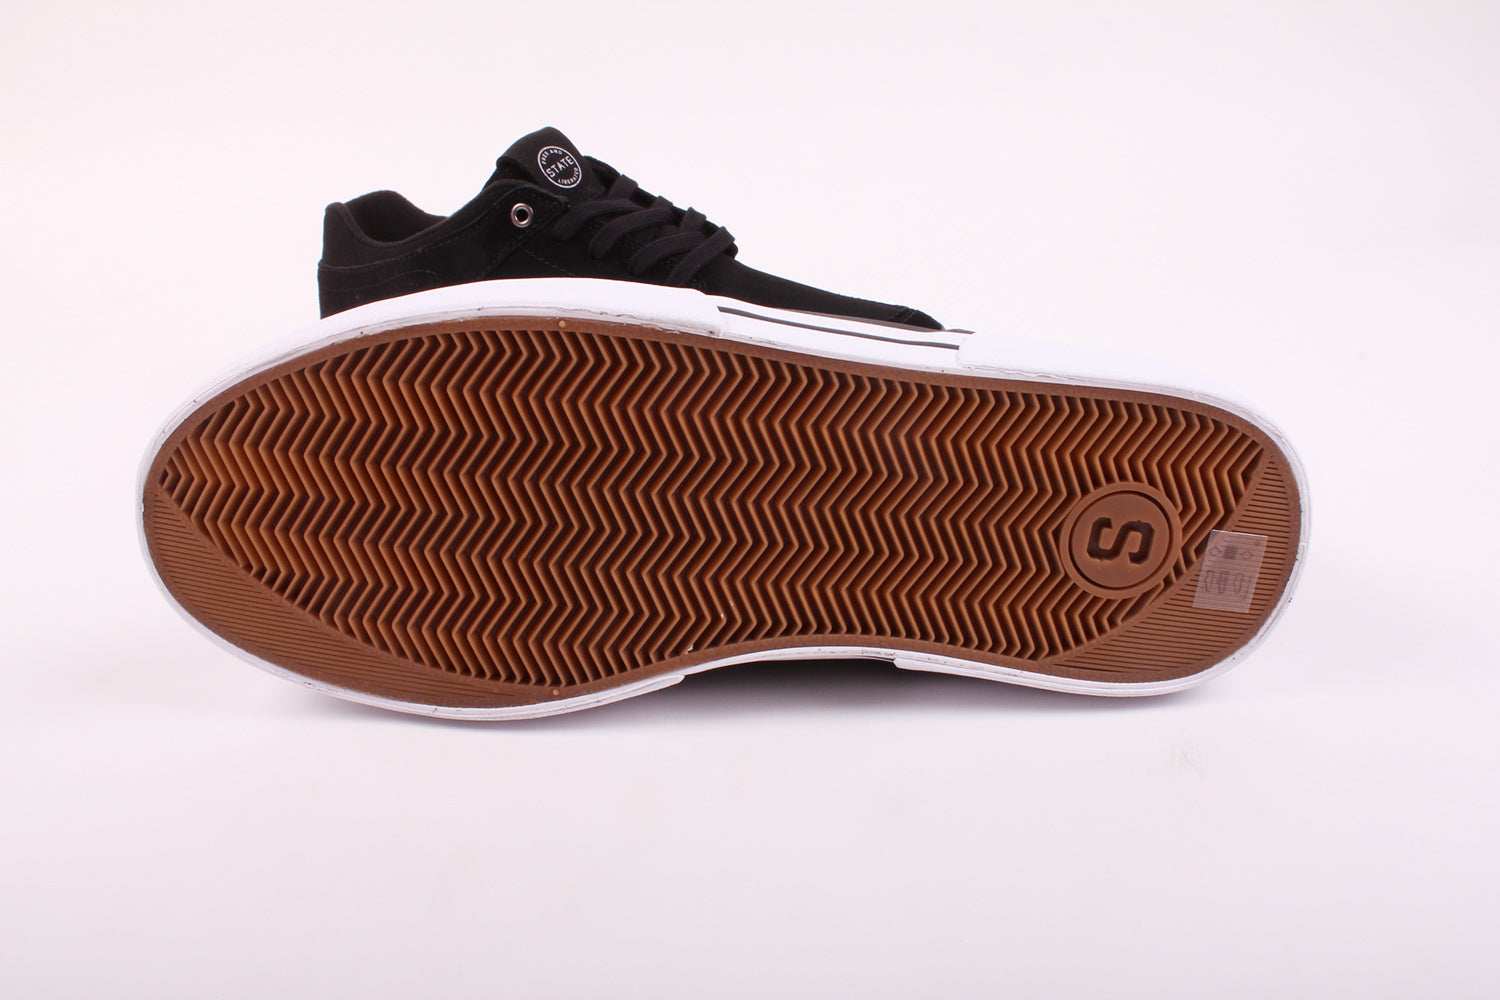 State x Orchard Mercer Low Black/White